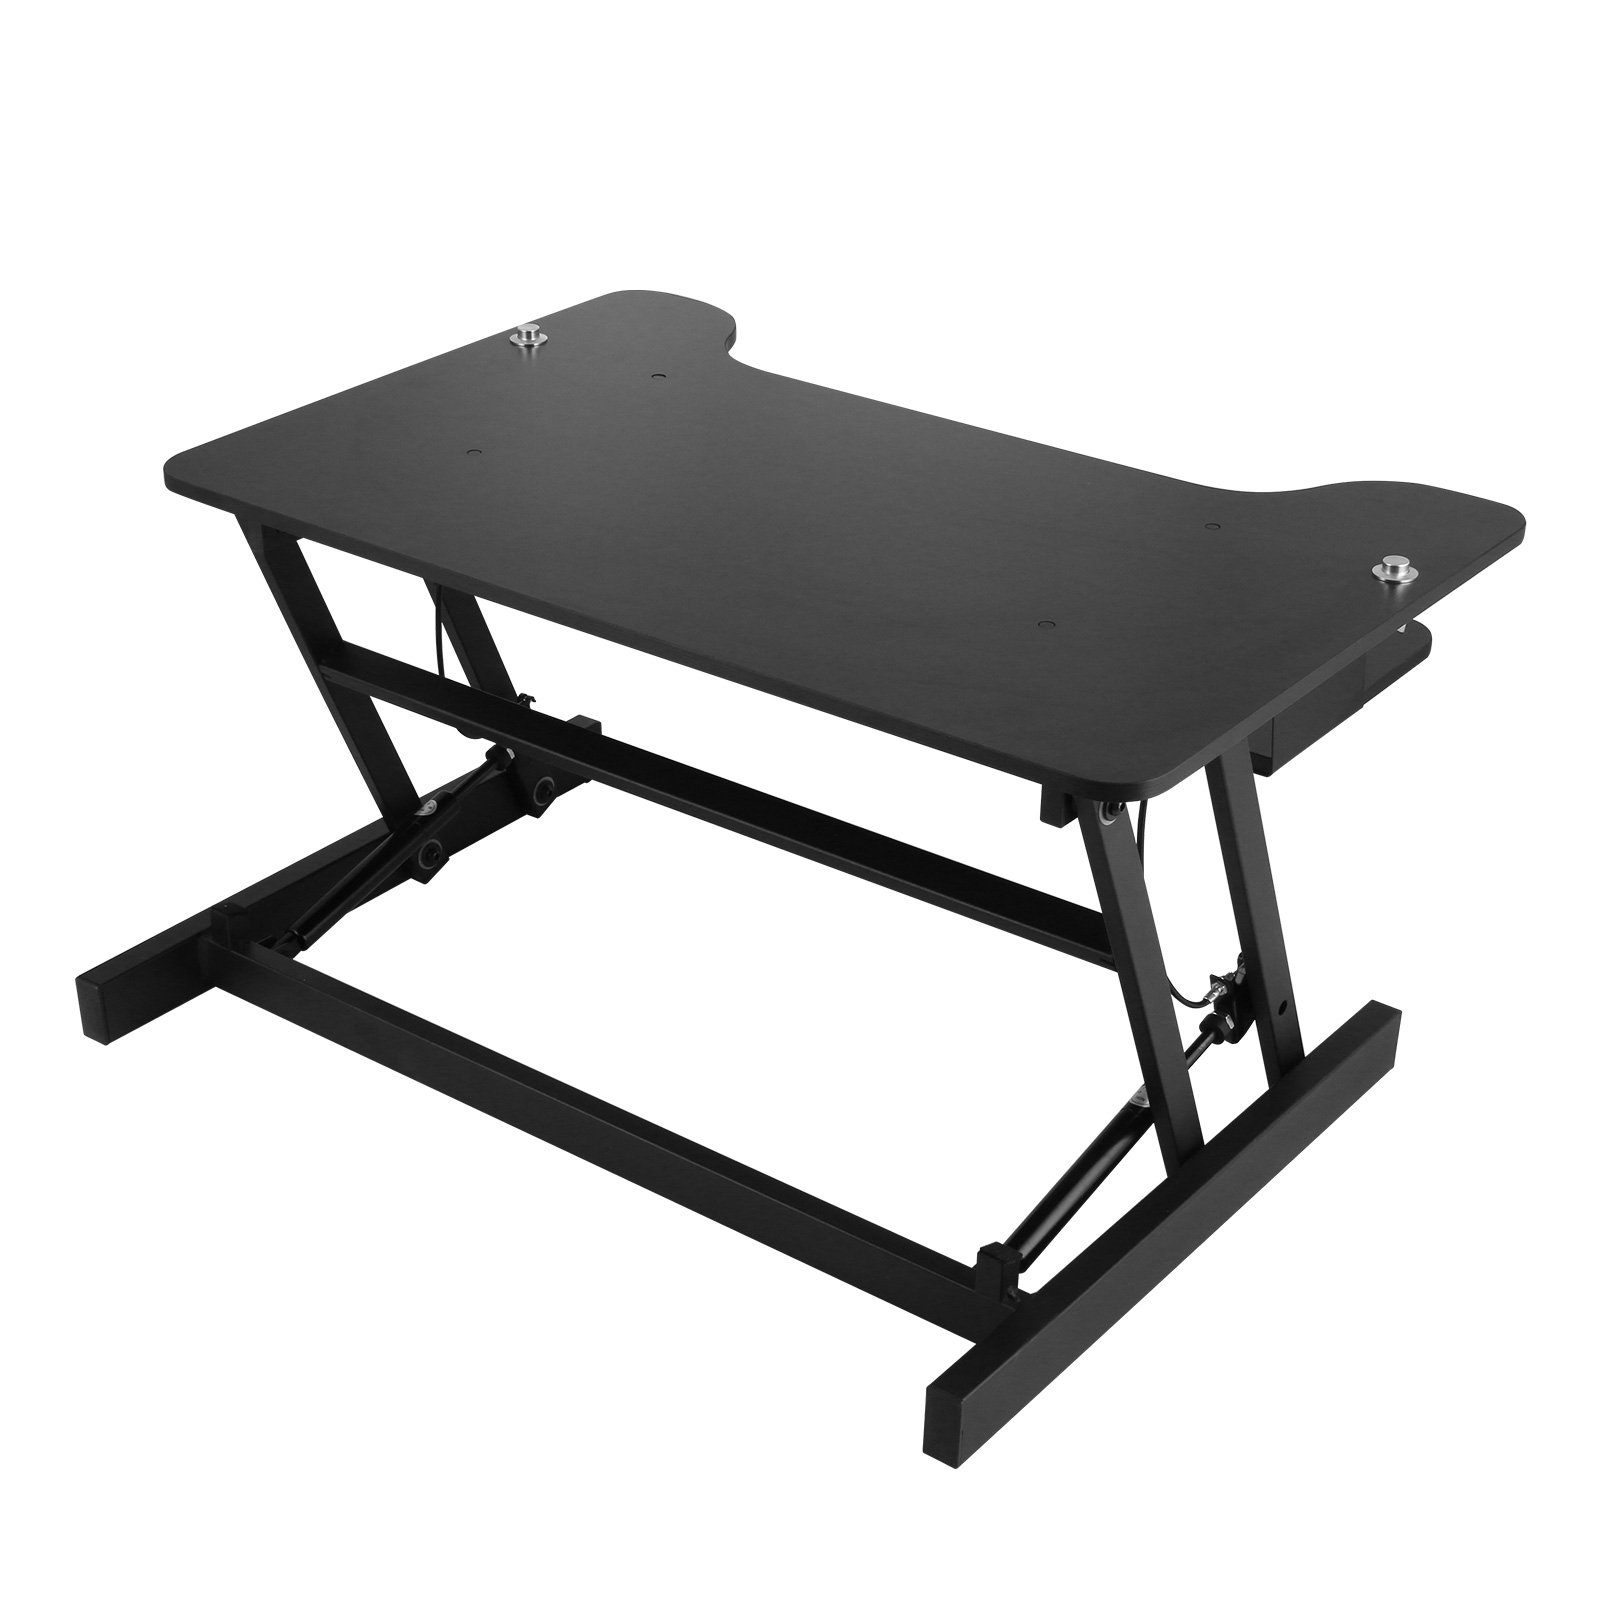 Mophorn Height Adjustable Standing Desk 2 Dual Monitors 31 Inch Wide Sit Stand Desk Riser 88Lbs Capacity Stand Up Desk Converter with Dedicated Keyboard Tray Elevating Desktop Riser Black by Mophorn (Image #9)